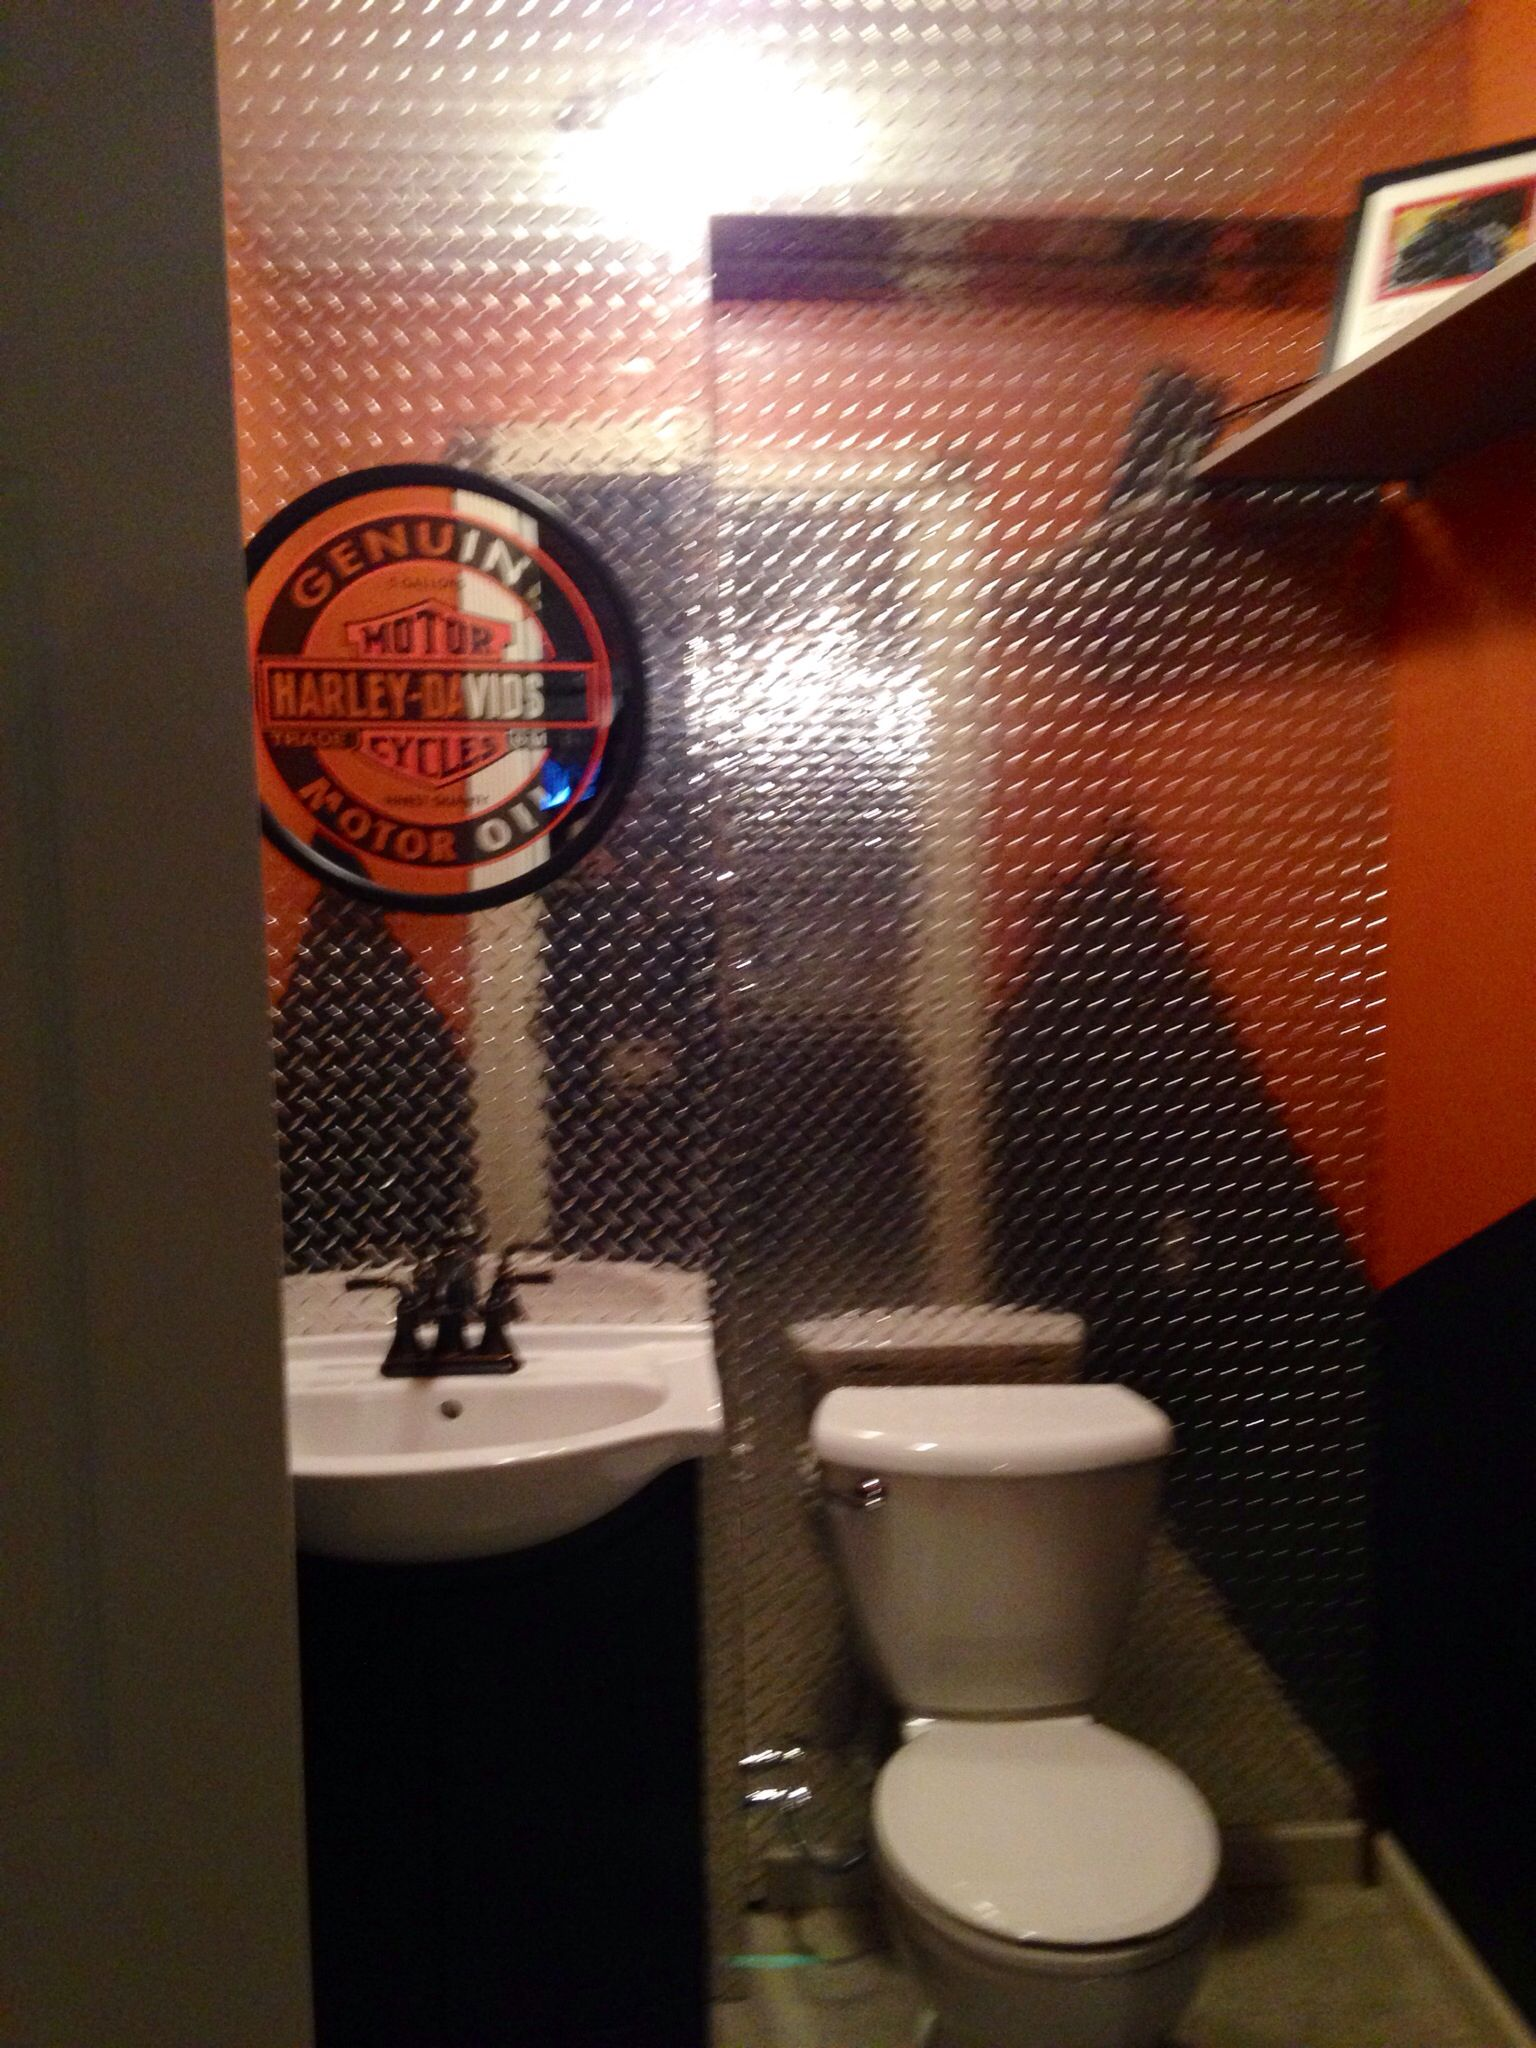 Harley Davidson Themed Bathroom Done For Our Basement Bar